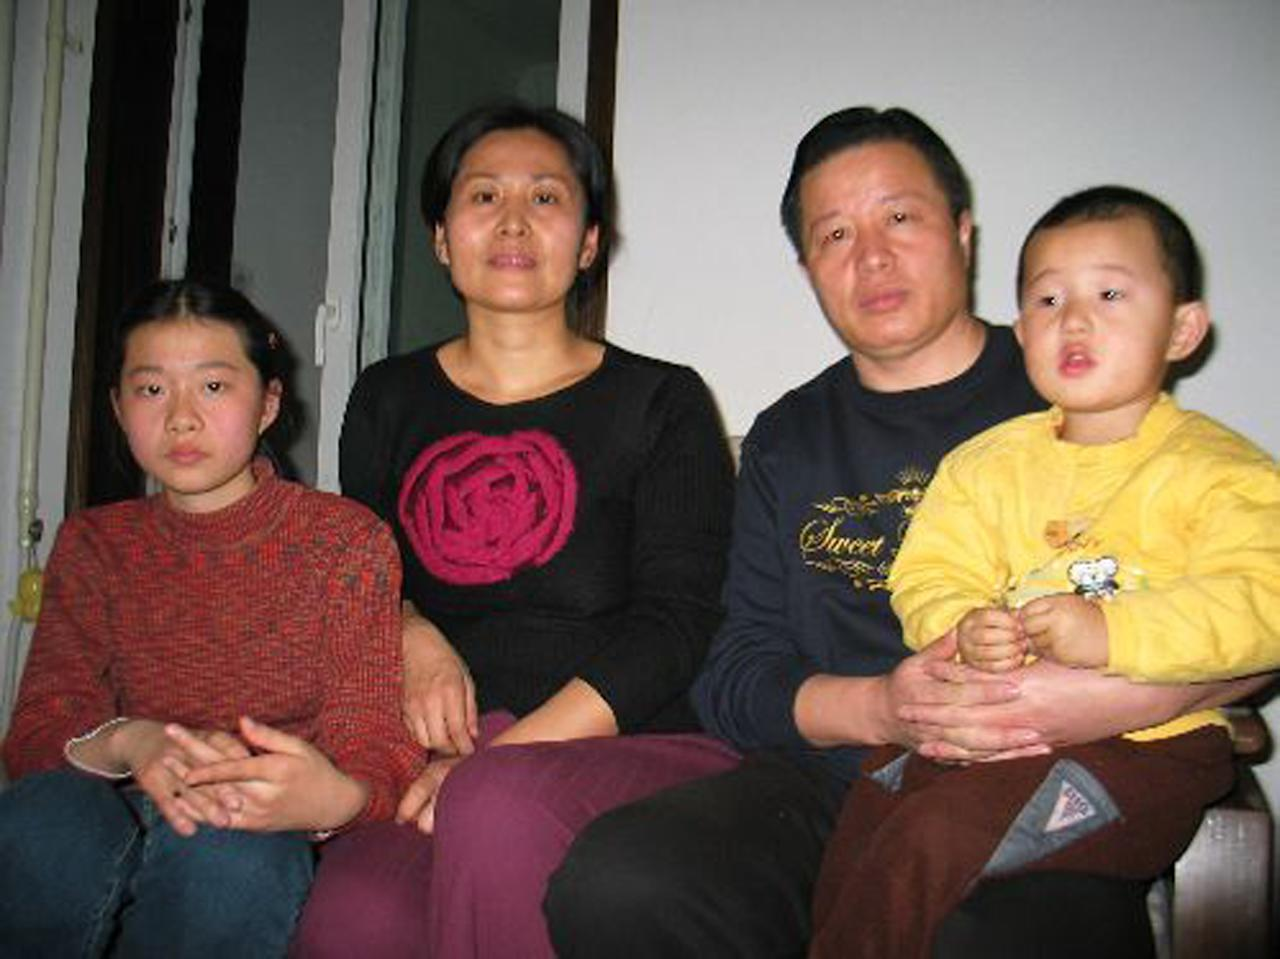 FILE - In this file photo taken Jan. 6, 2006 and released by Hu Jia, Gao Zhisheng, a human rights lawyer, second from right, poses for photos with his son Gao Tianyu, right, and his wife Geng He, second from left, and daughter Geng Ge, left, at their home in Beijing, China. An activist said Gao, one of China's best-known rights lawyers and fiery government critic ,has been released from prison but appears to be under close supervision by the authorities. Hu Jia said Gao was freed Thursday, Aug. 7, 2014, from a prison in a remote far-western county and is with his brother. (AP Photo/Hu Jia, File)